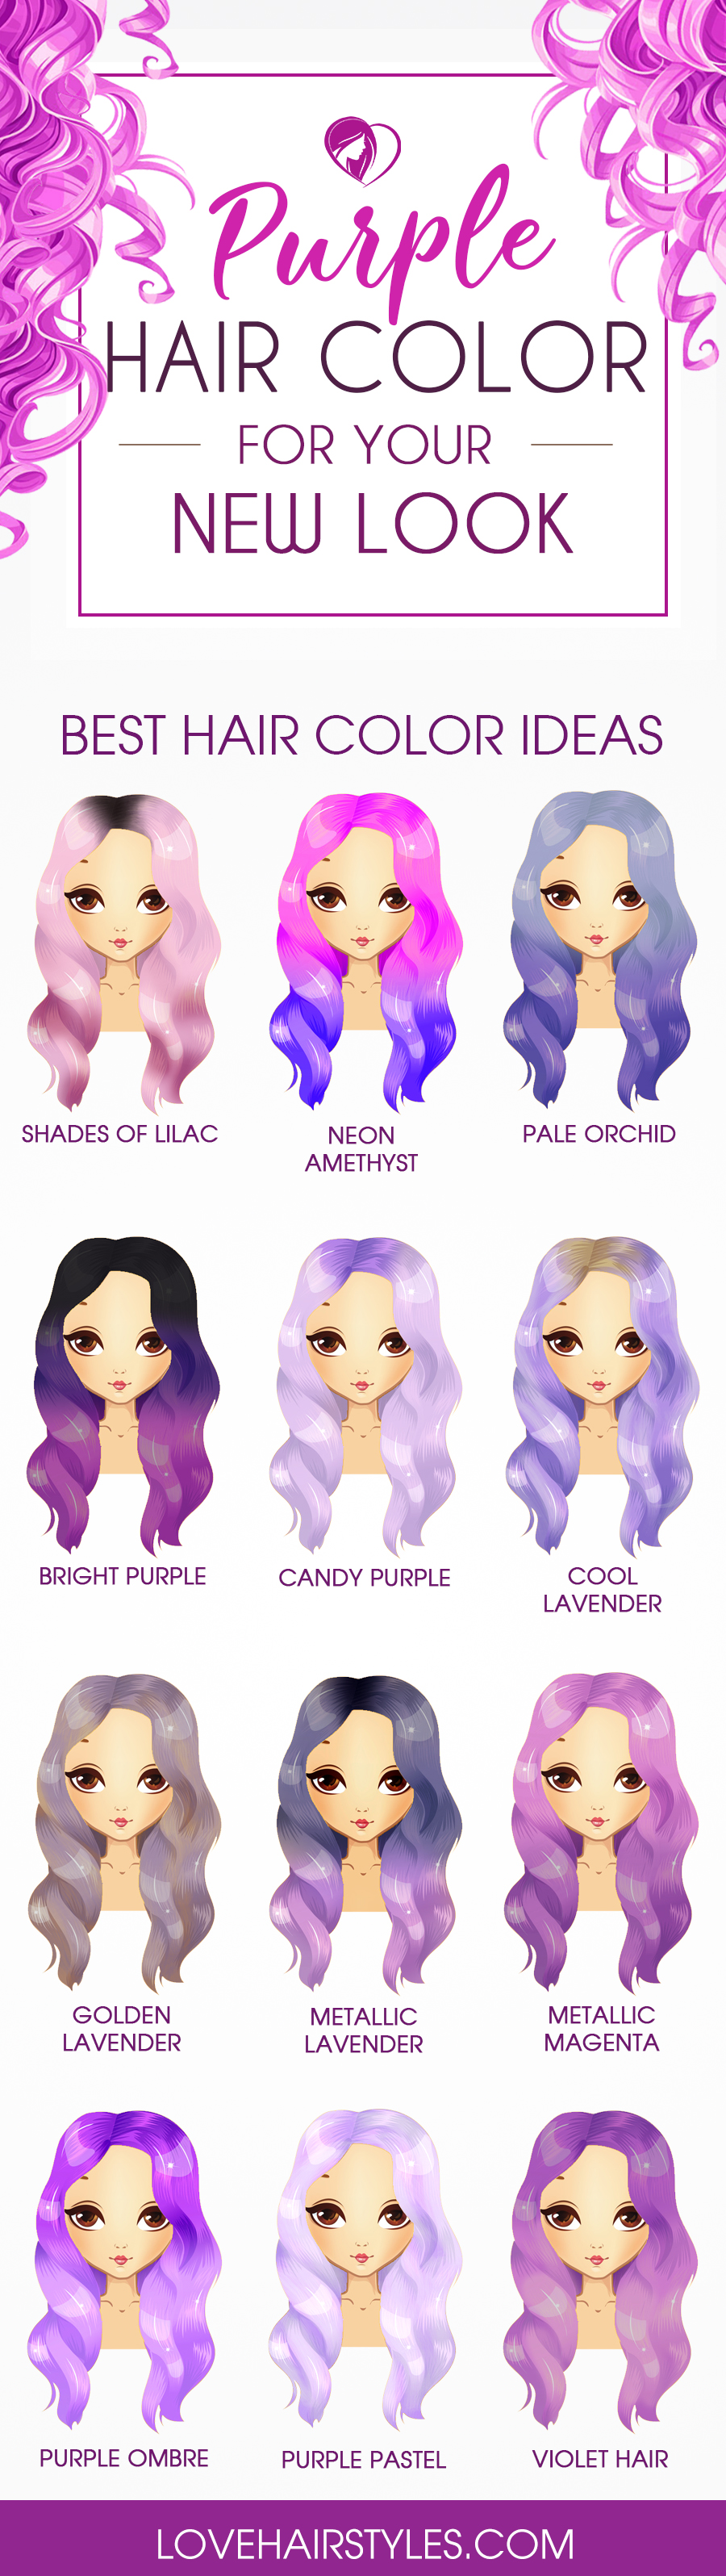 12 Tempting And Attractive Purple Hair Looks  LoveHairStyles.com